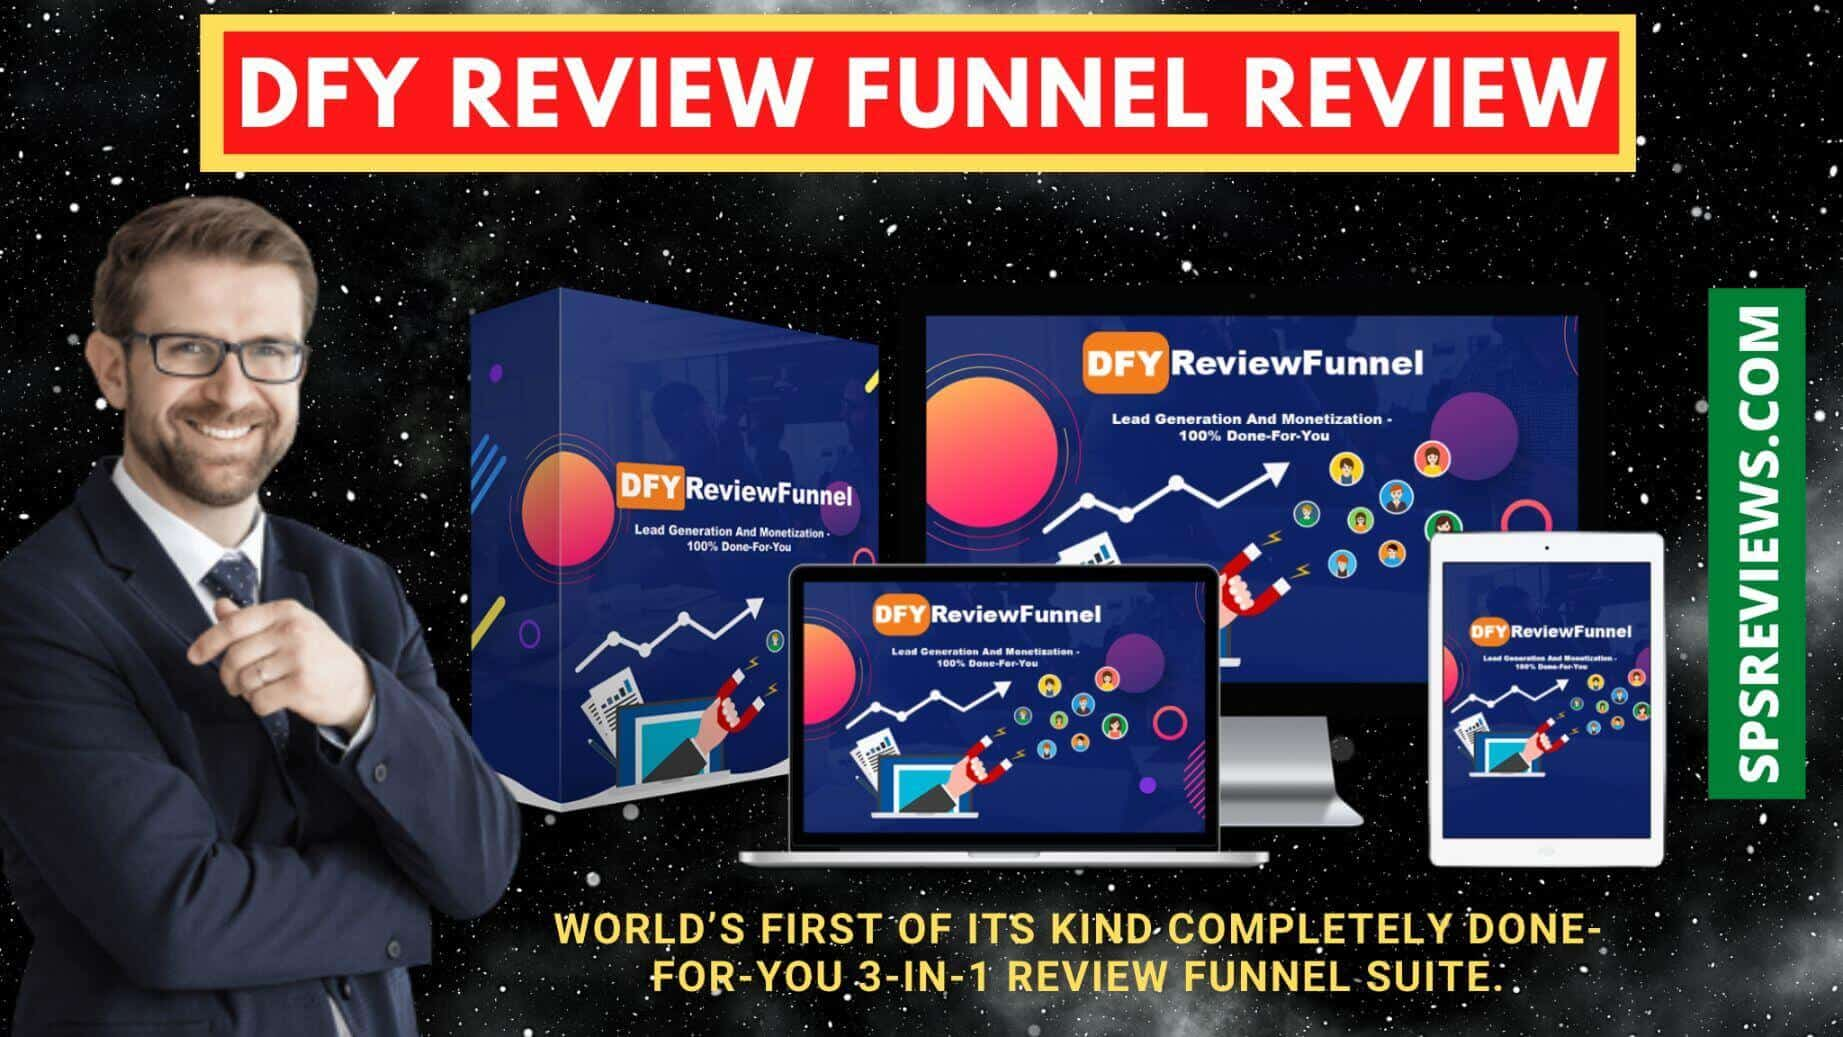 DFY Review Funnel Review